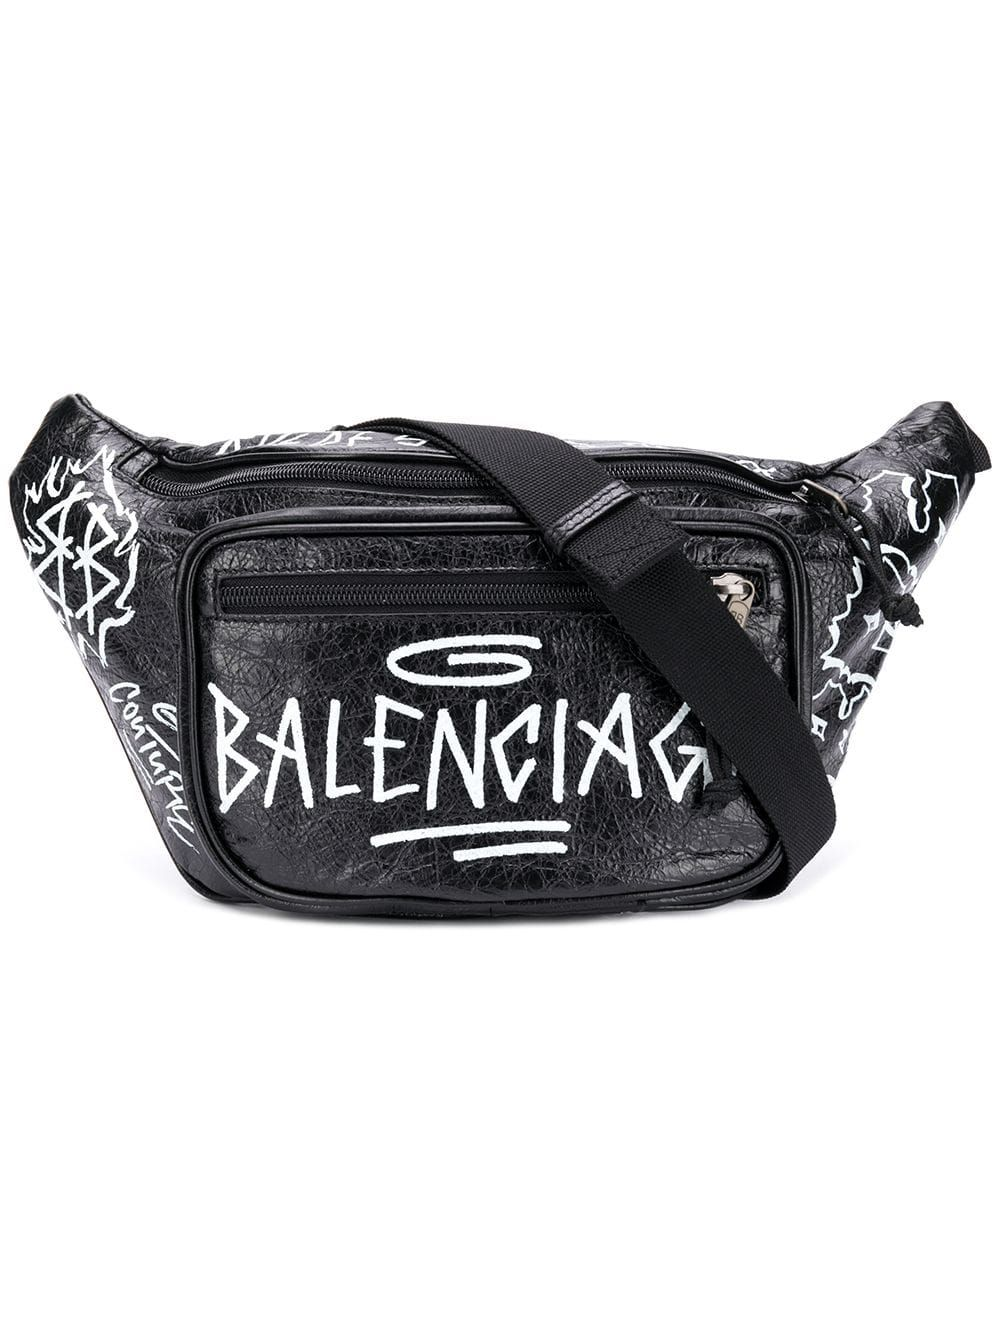 49cc82c44cf8 BALENCIAGA BALENCIAGA EXPLORER BELT BAG - BLACK.  balenciaga  bags  leather   belt bags